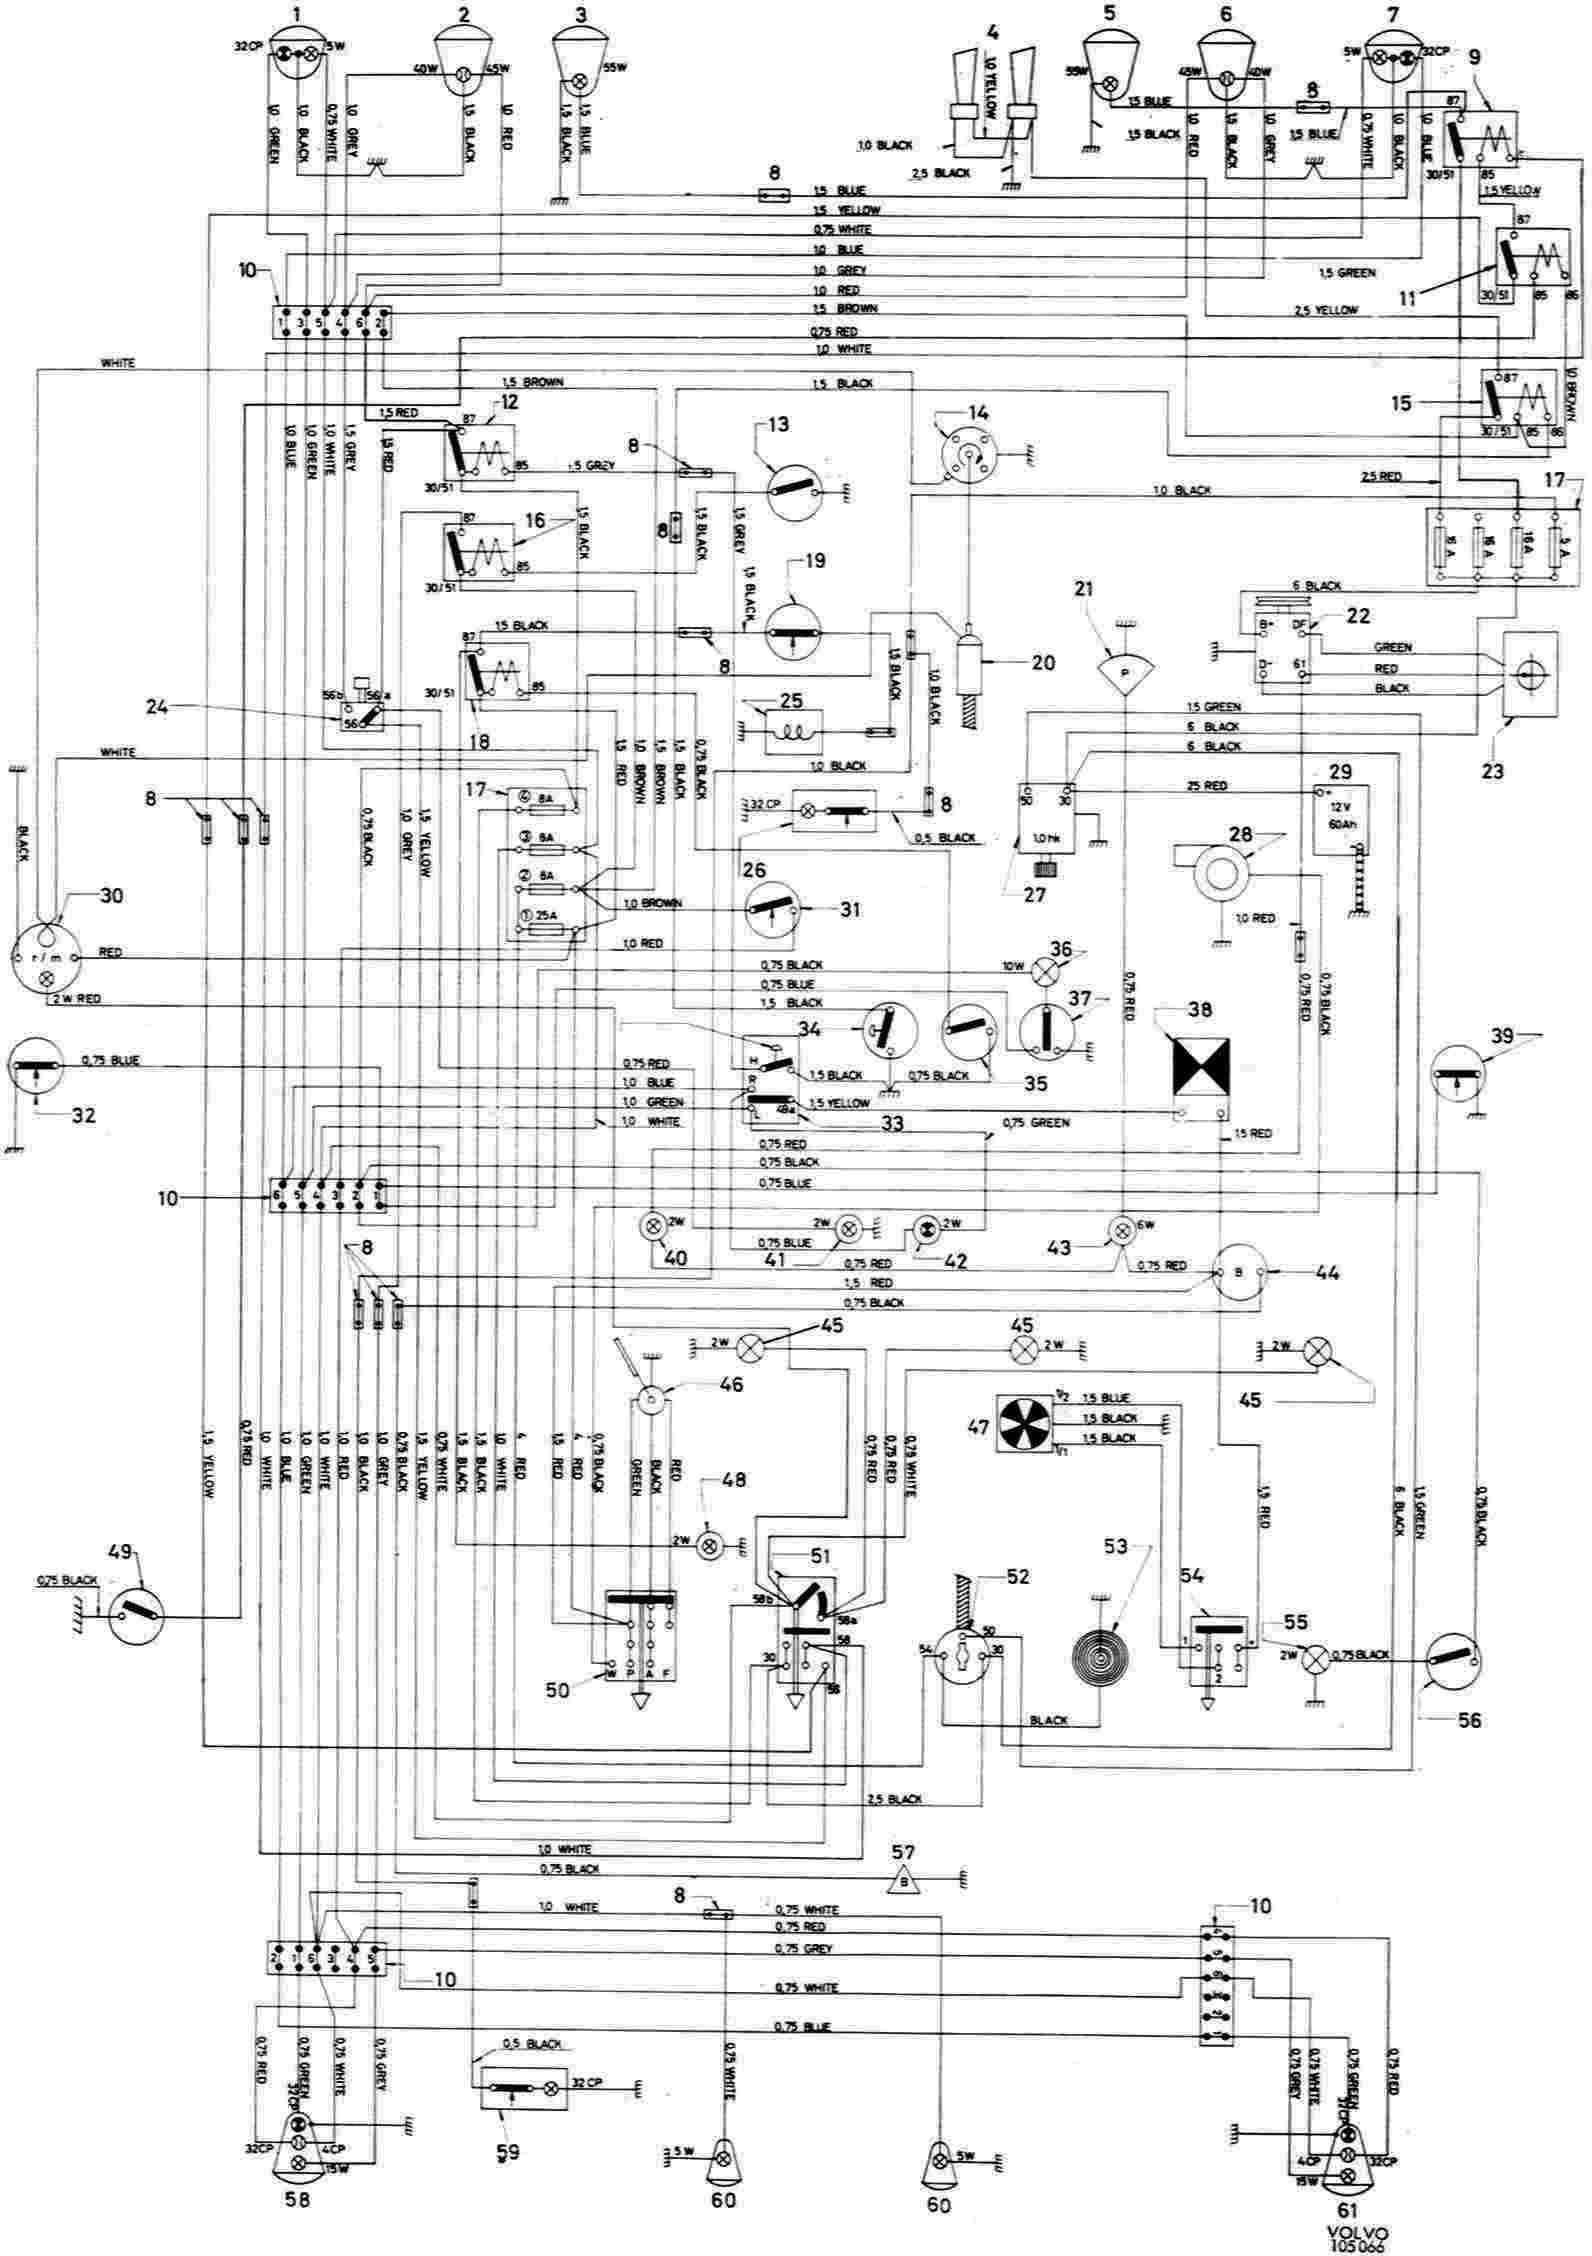 Wiring Diagram Cars Trucks Wiring Diagram Cars Trucks Truck Horn Wiring Wiring Diagrams Volvo Volvo V70 Semi Trucks